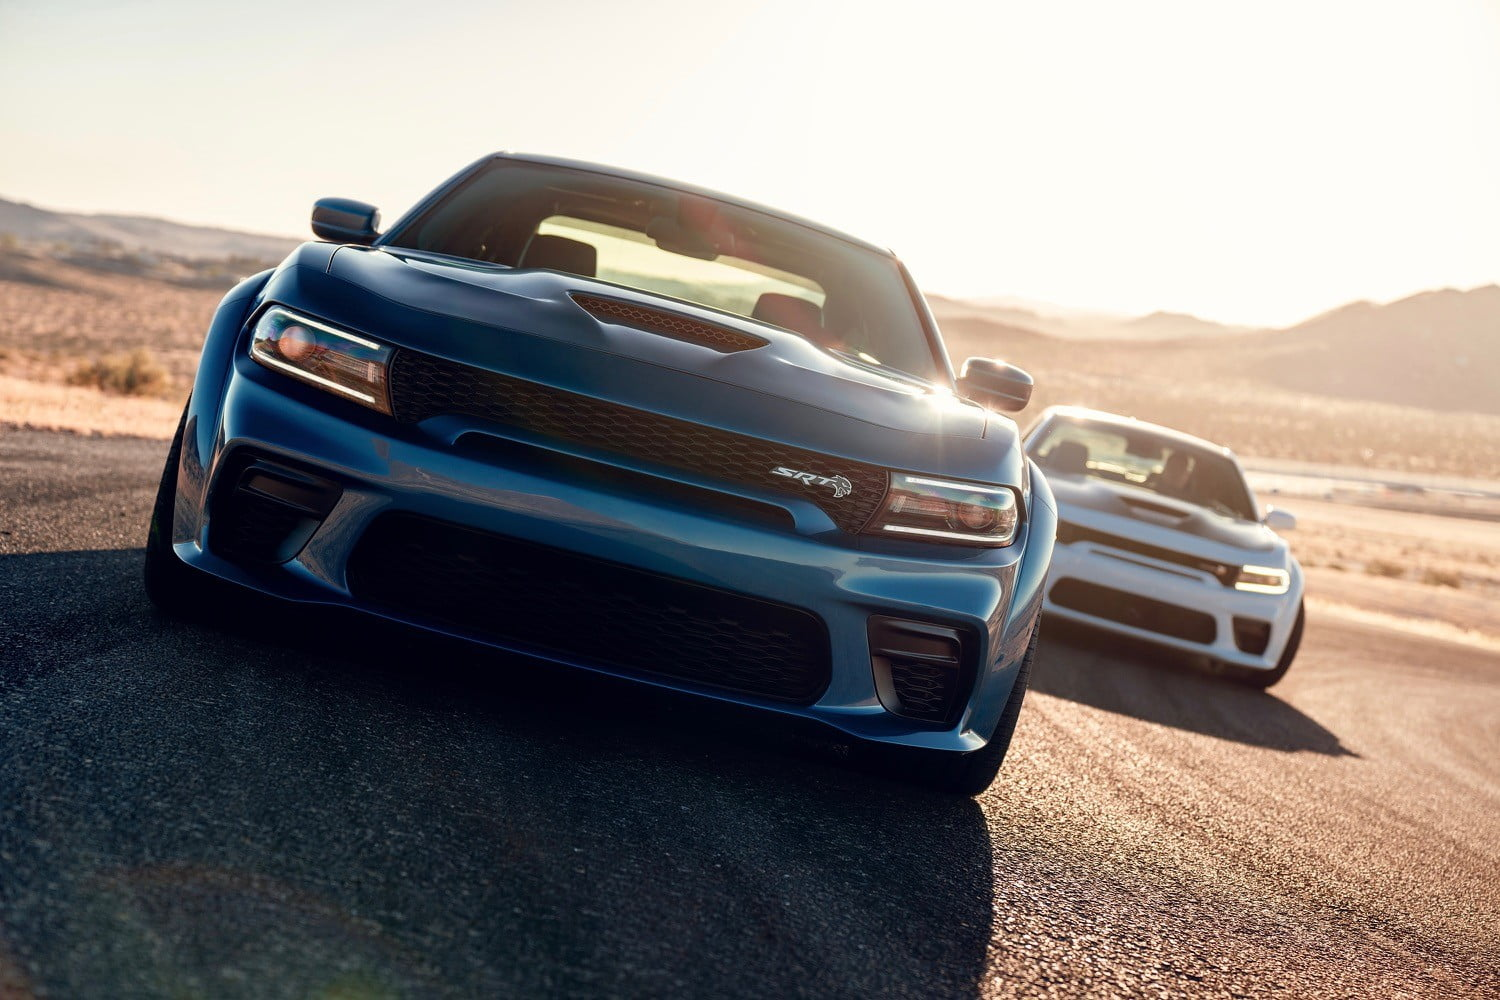 2020 Dodge Charger Hellcat and Scat Pack Widebody Models